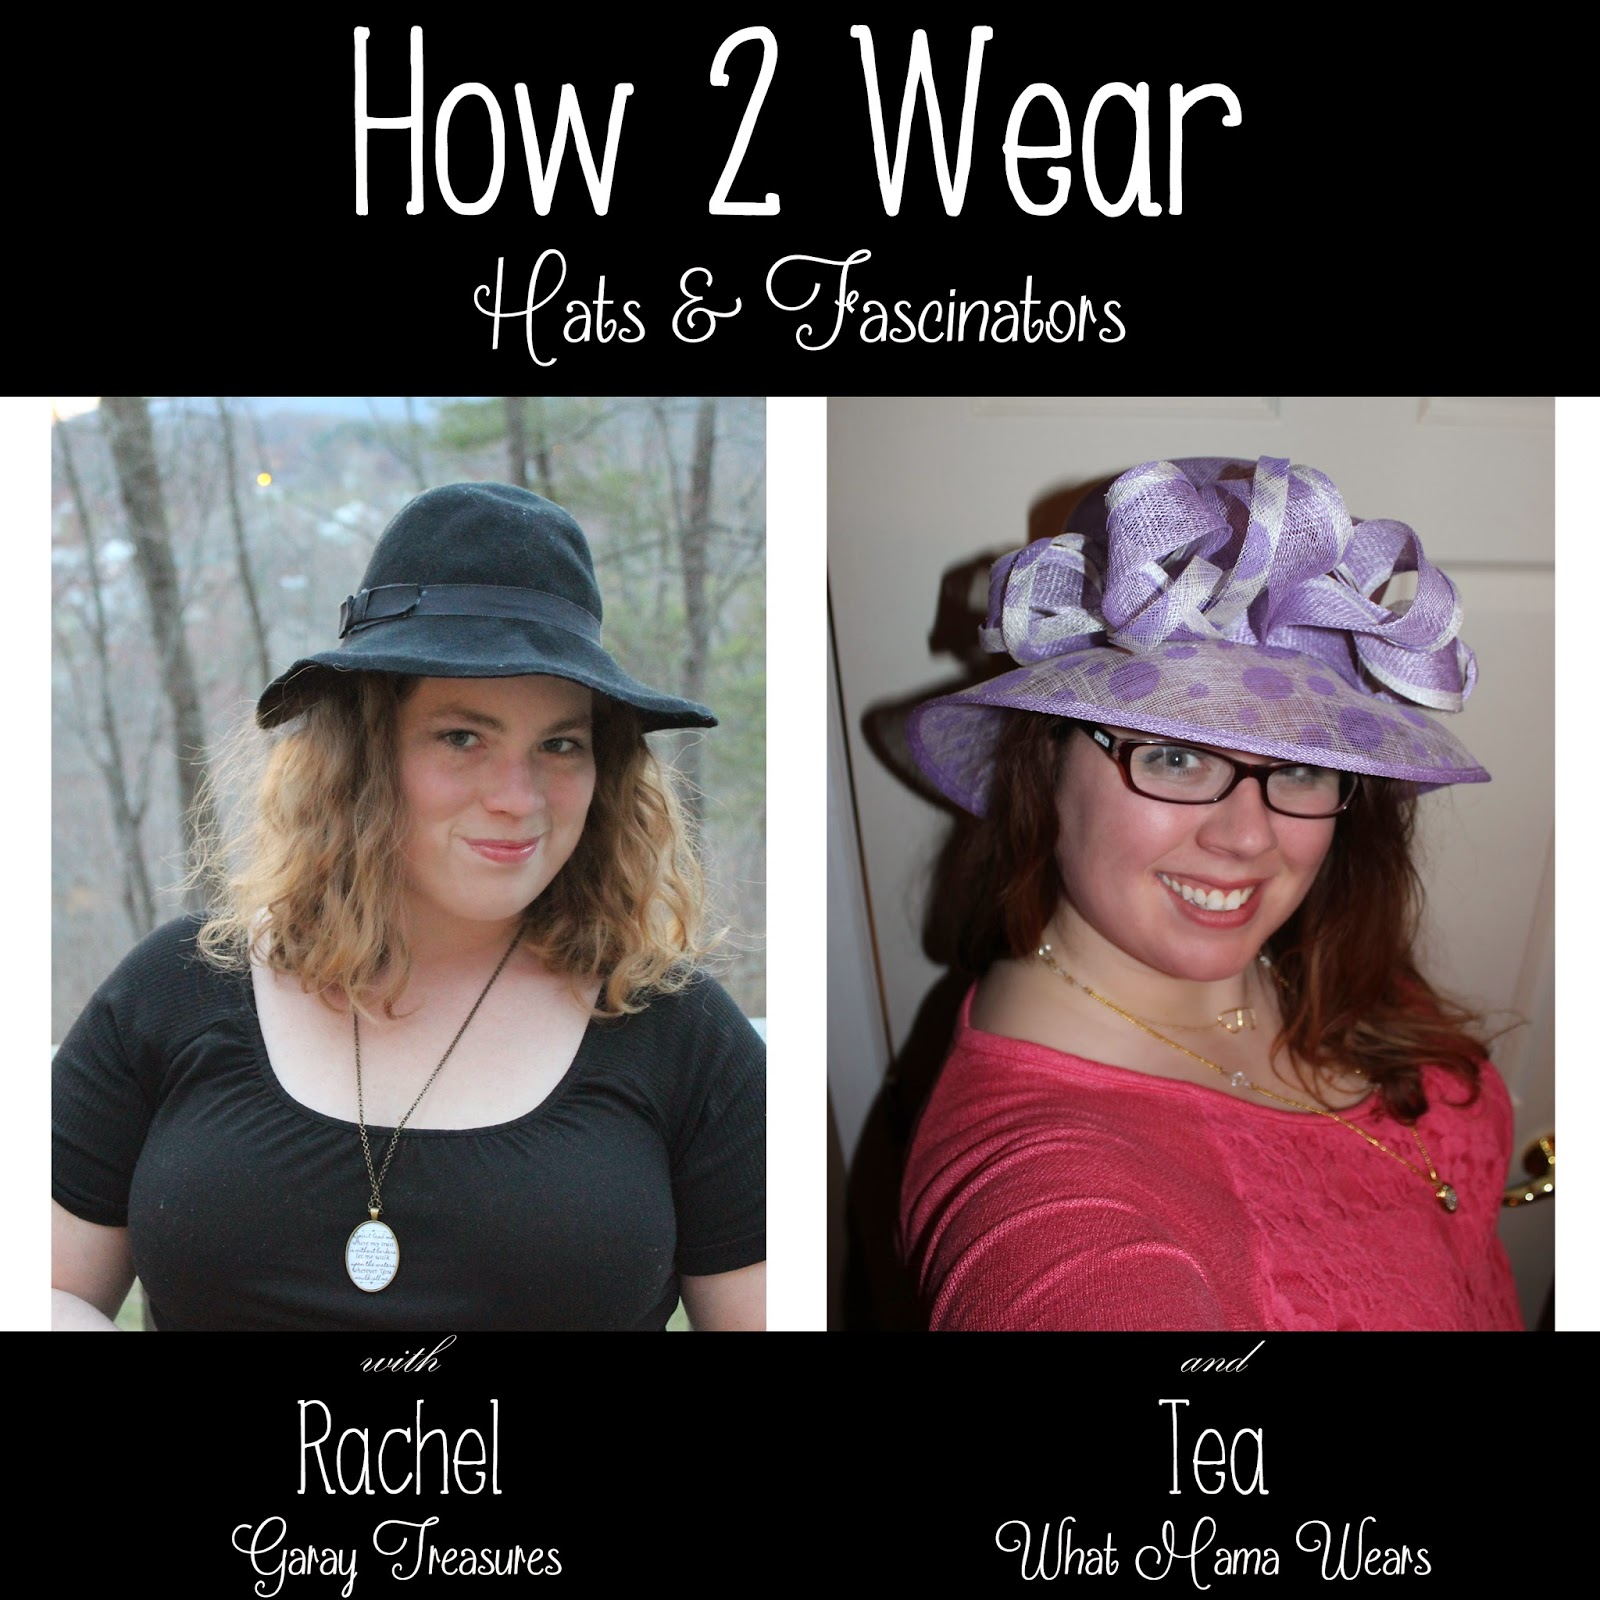 how to wear, hats, fascinators, garay treasures, what mama wears